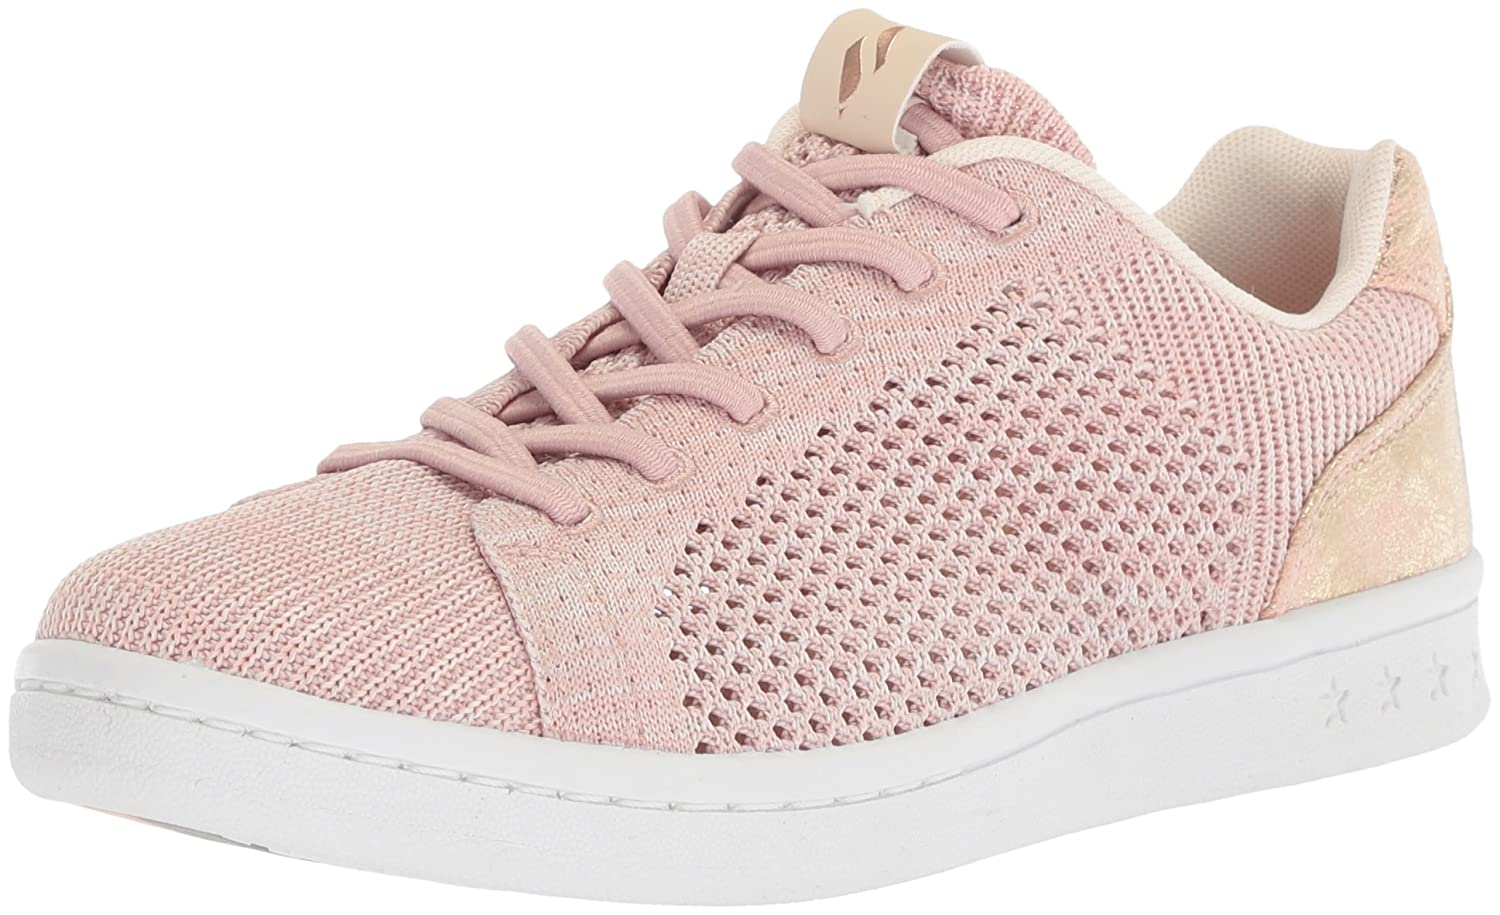 Skechers Women's Darma-Engineered Knit Bungee Sneaker B0742V7CDH 9 B(M) US|Light Pink